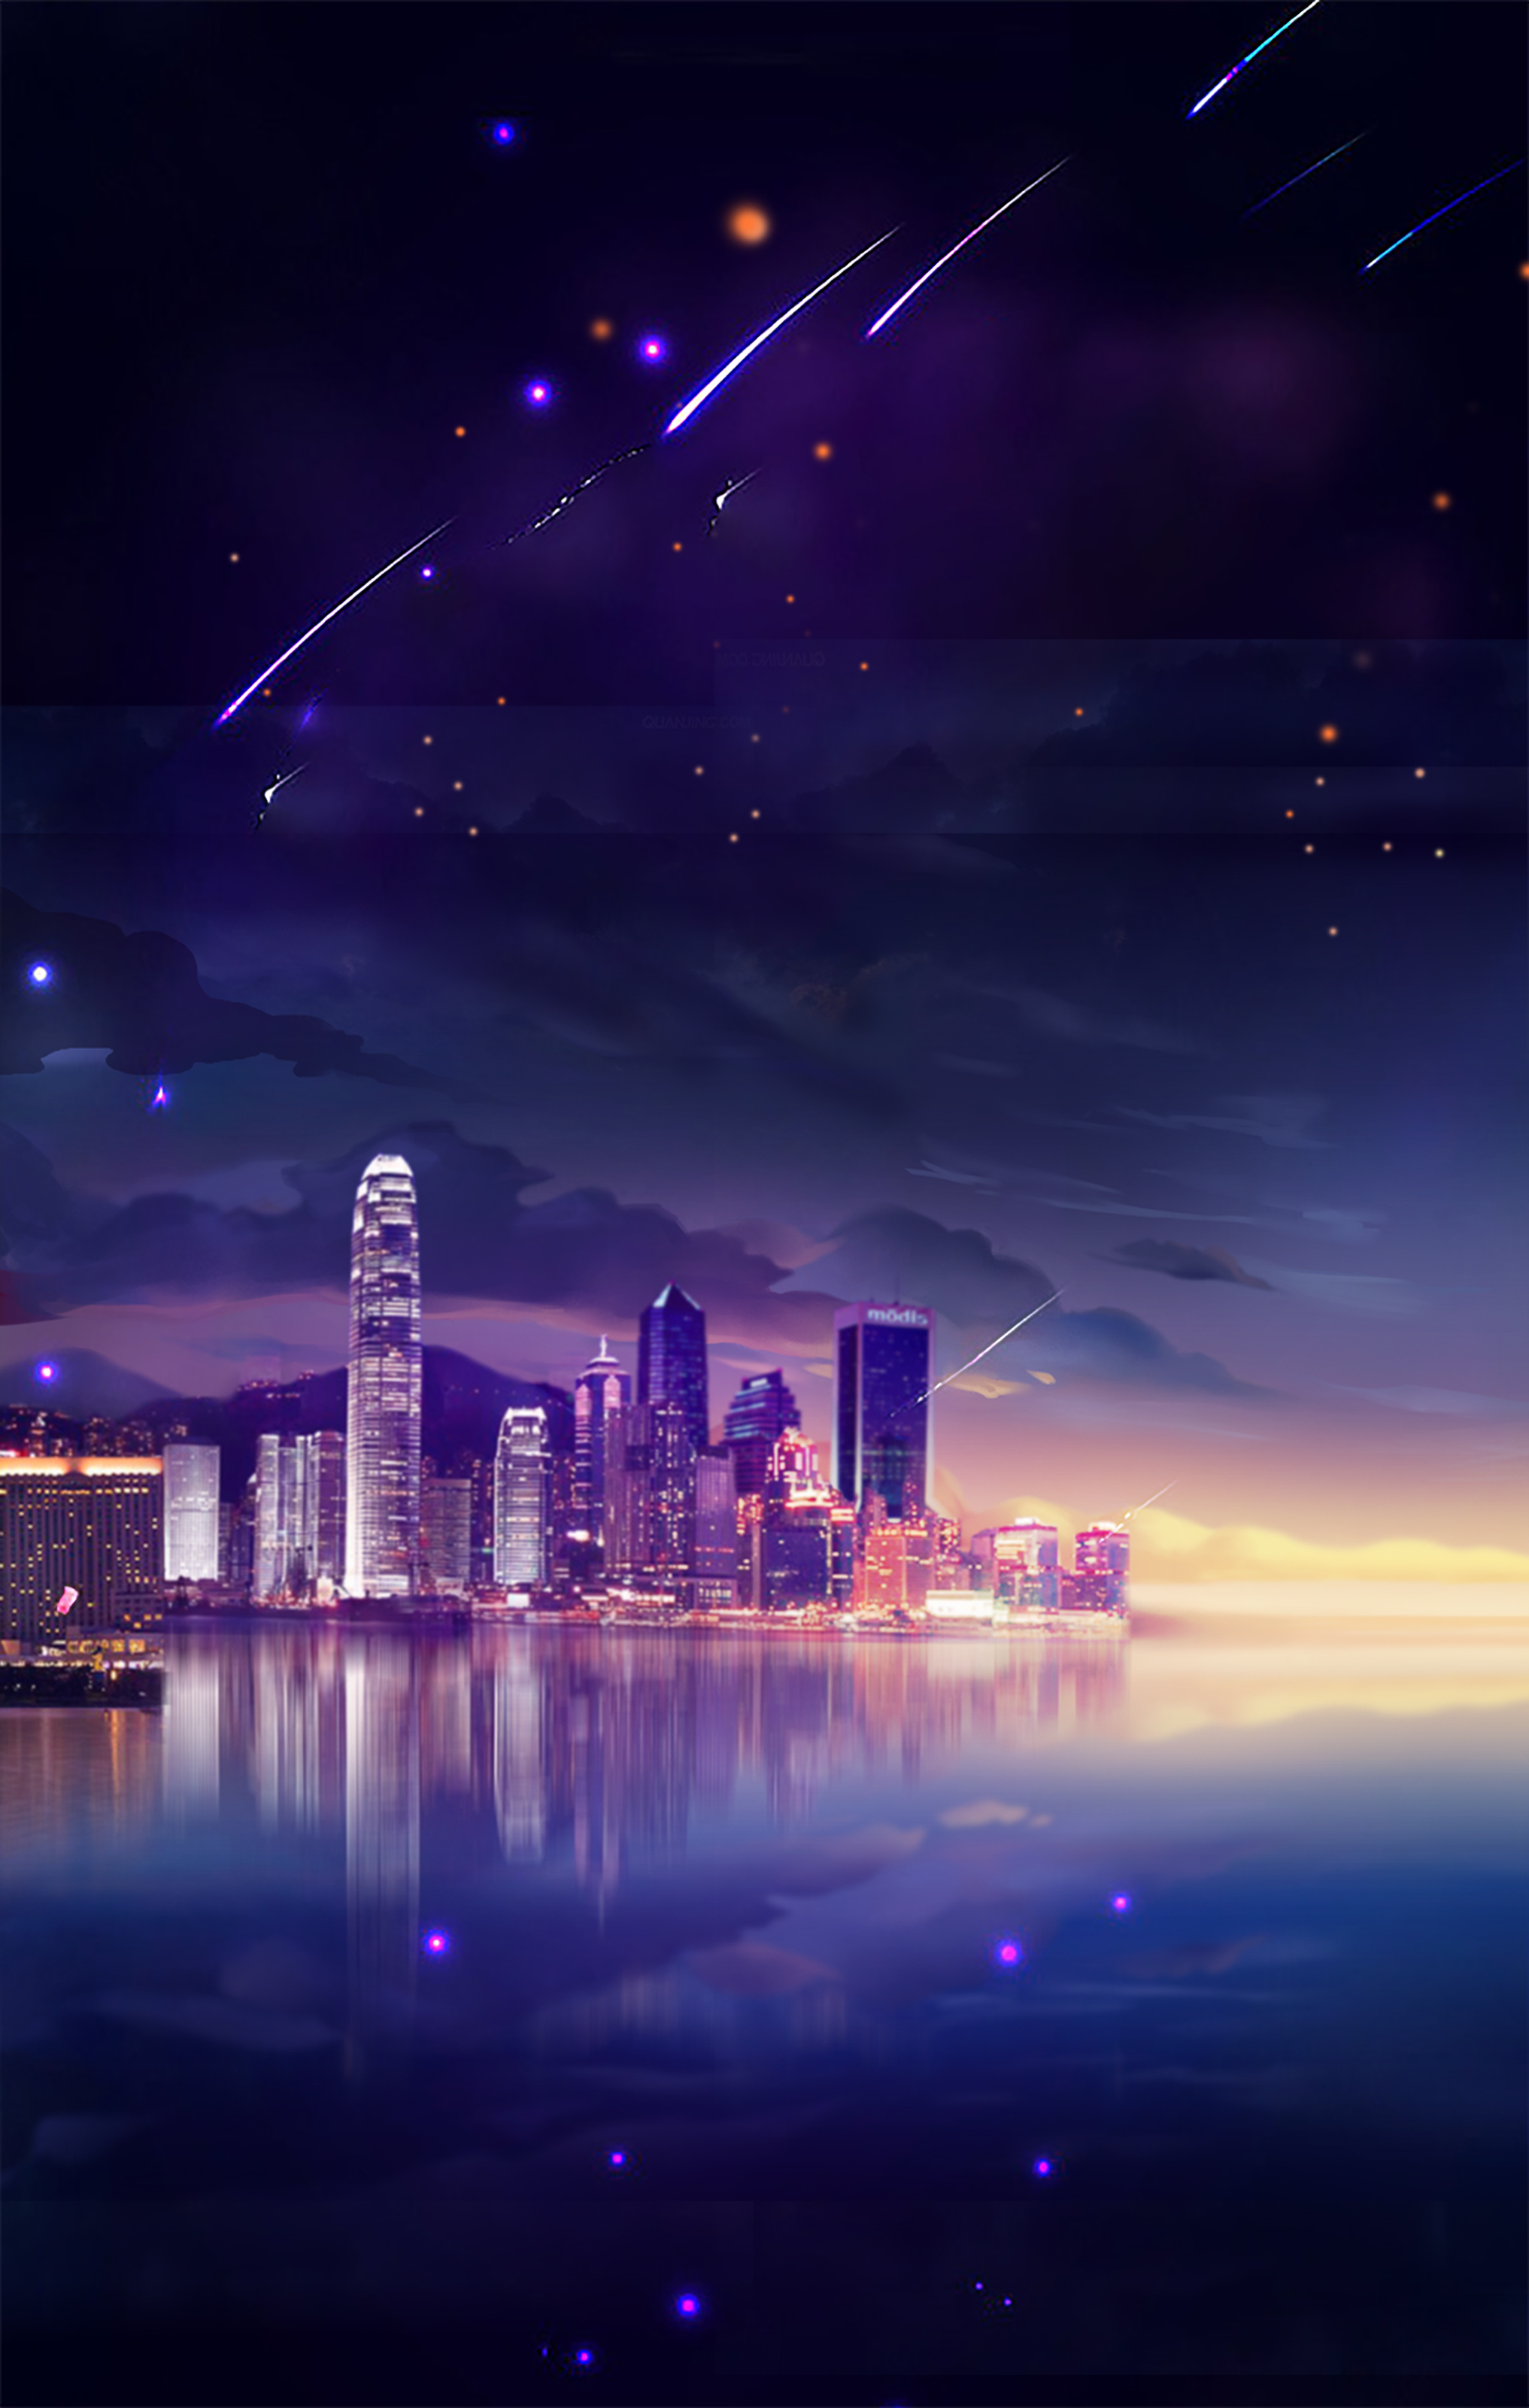 beautiful city night sky tanabata poster background psd